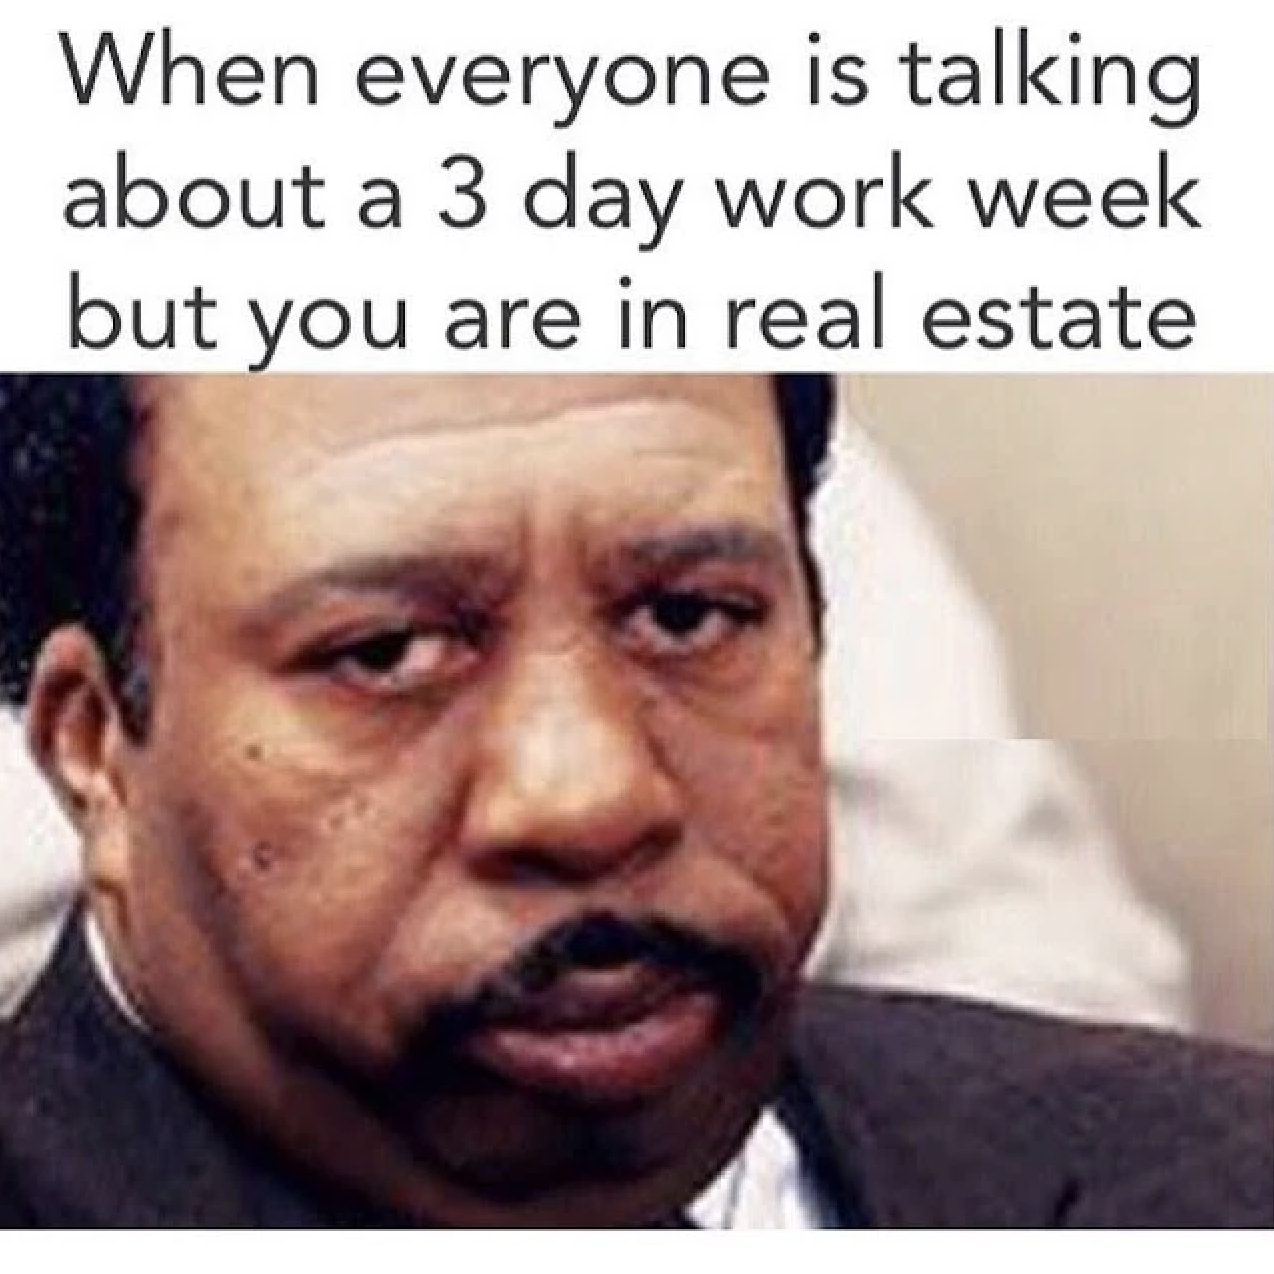 When everyone is talking about a 3 day work week but you are in real estate